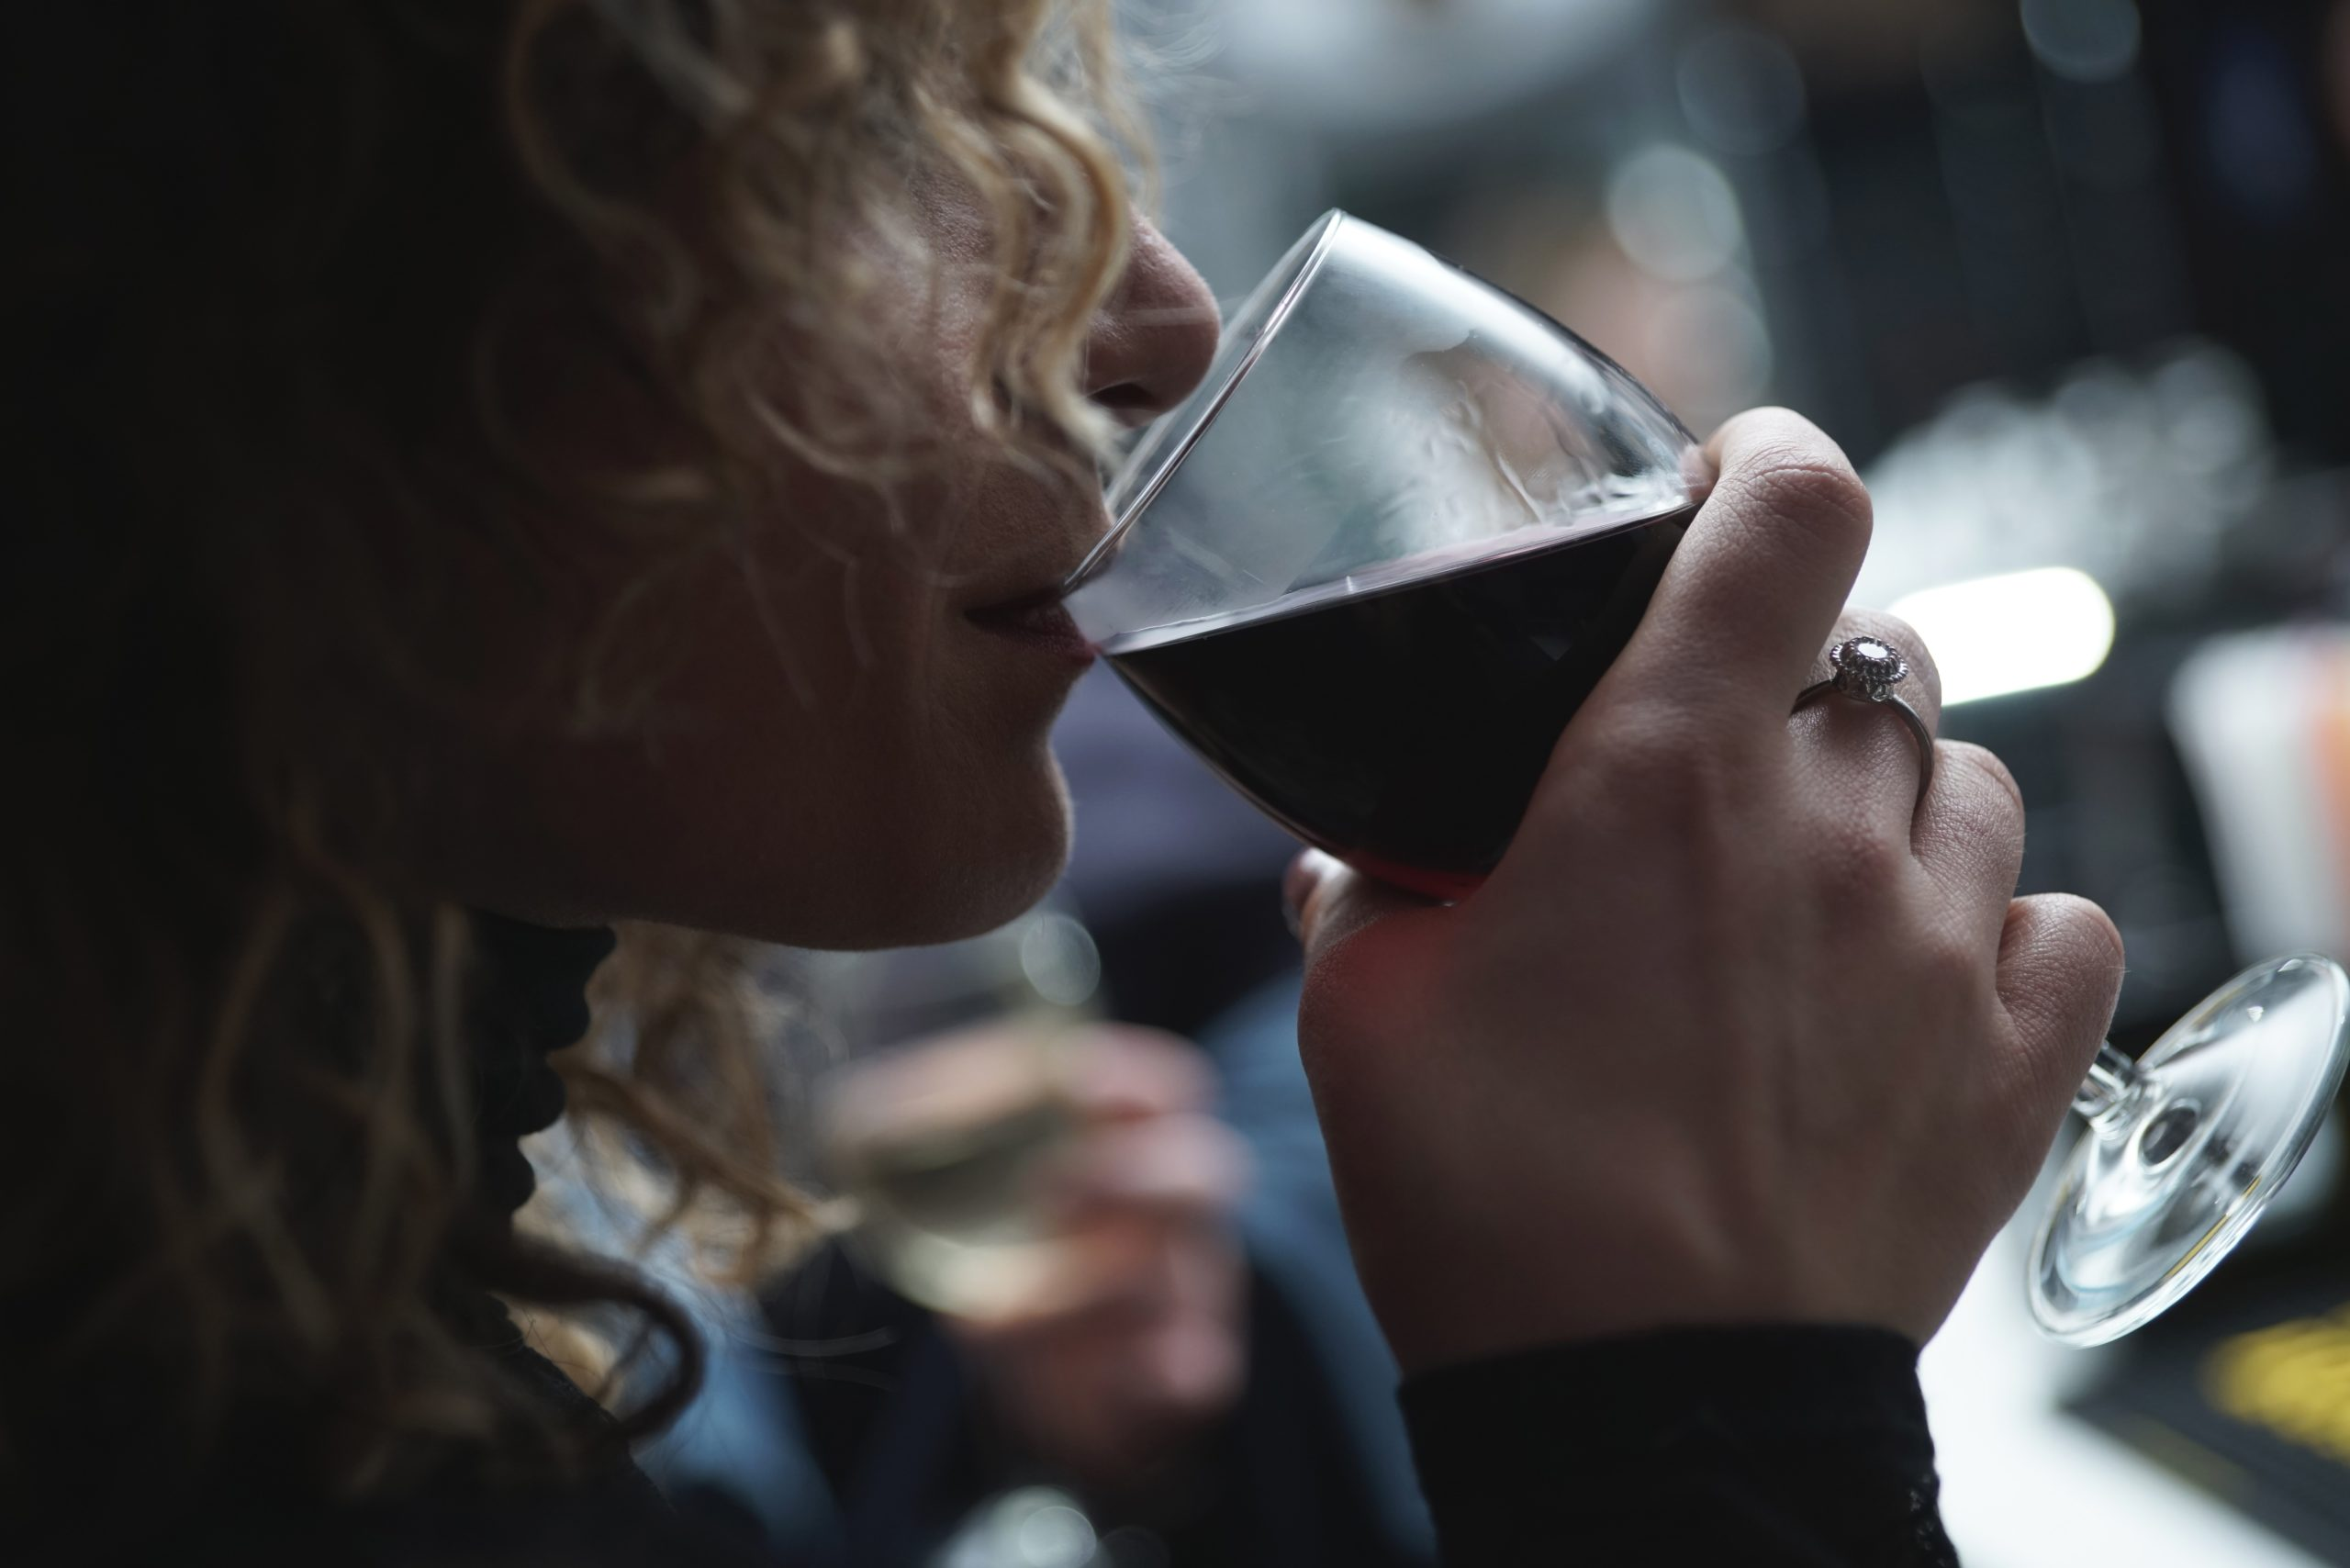 A woman drinks a glass of wine with a soft smile on her face. She has started online anxiety treatment in Texas with Everyday Bravery. You can get online counseling in Texas with Addie too!